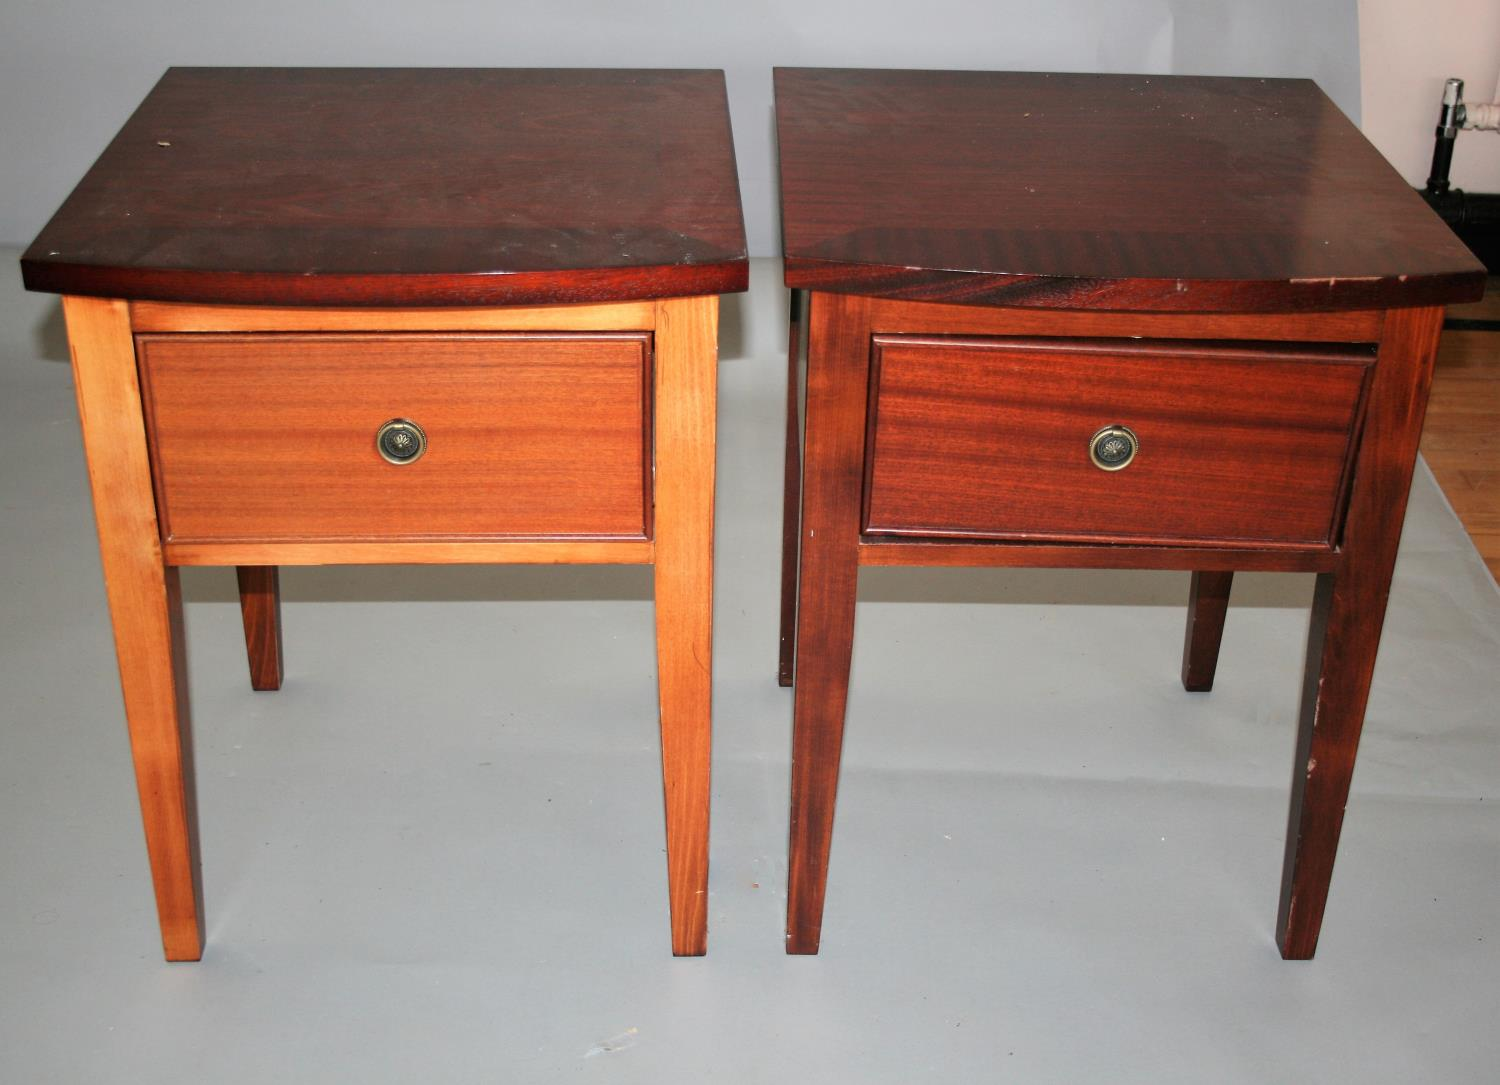 Wrought iron and painted wood two tier shelf and two pairs of bed side lockers 54W x 41H x 38D - Image 2 of 6